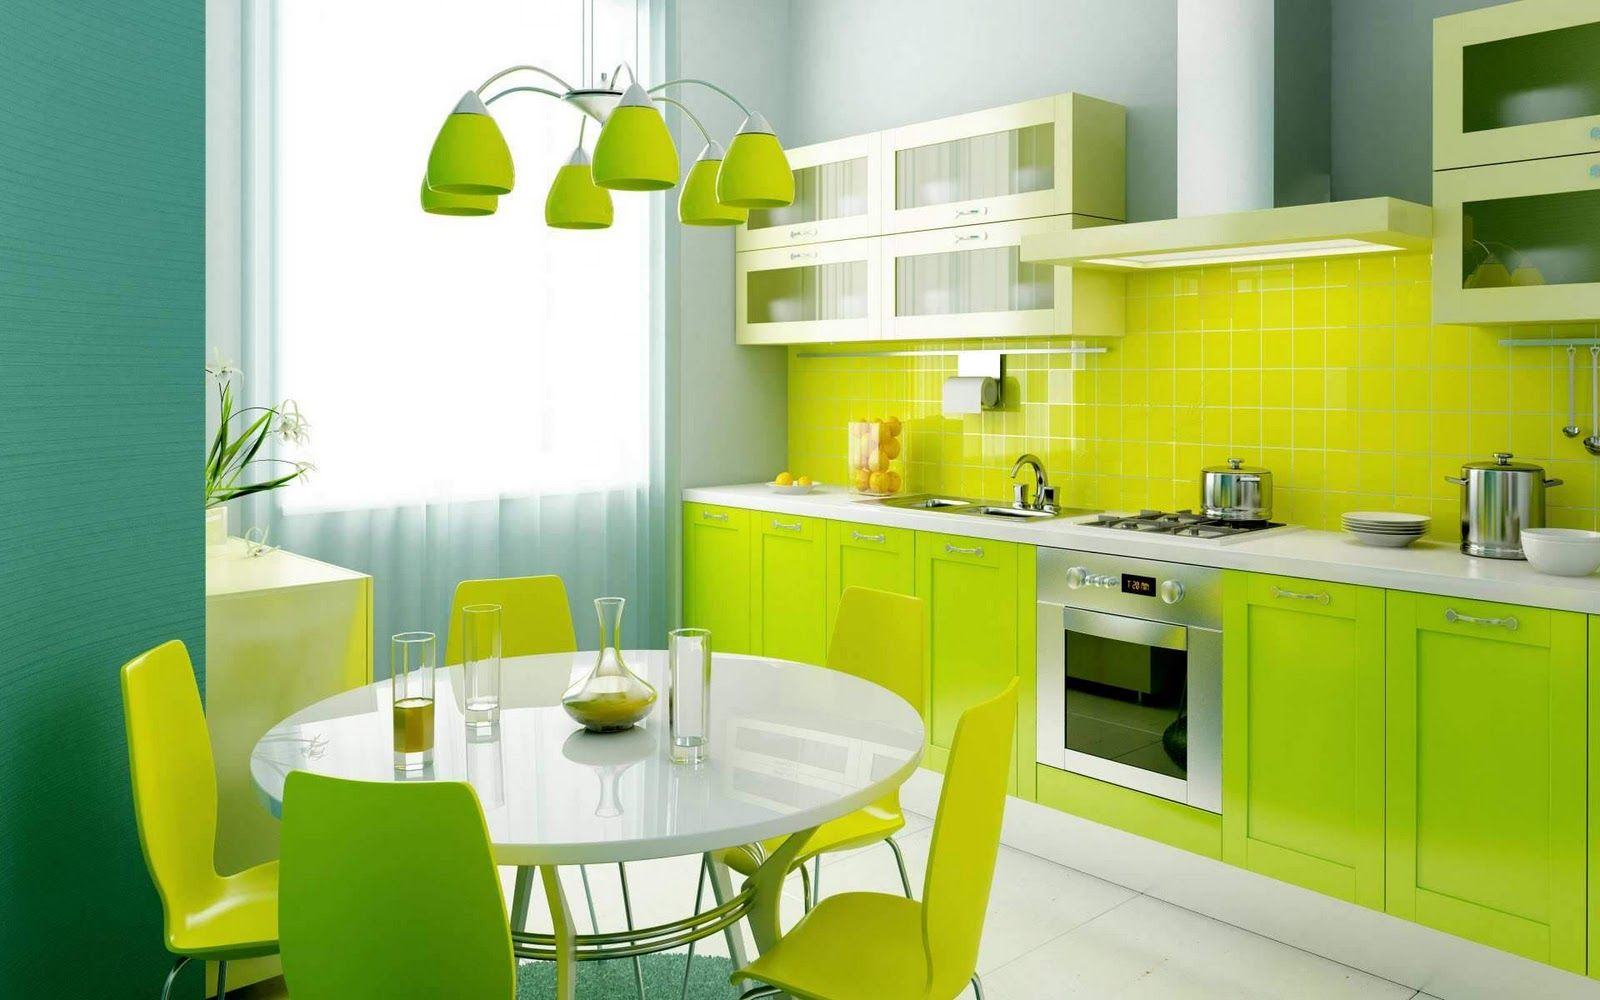 Inspiring Summer Interiors: 50 Green And Yellow Kitchen Designs : 50 Green  And Yellow Kitchen Designs With White Green Kitchen Wall Window Curtain  Cabinet ...